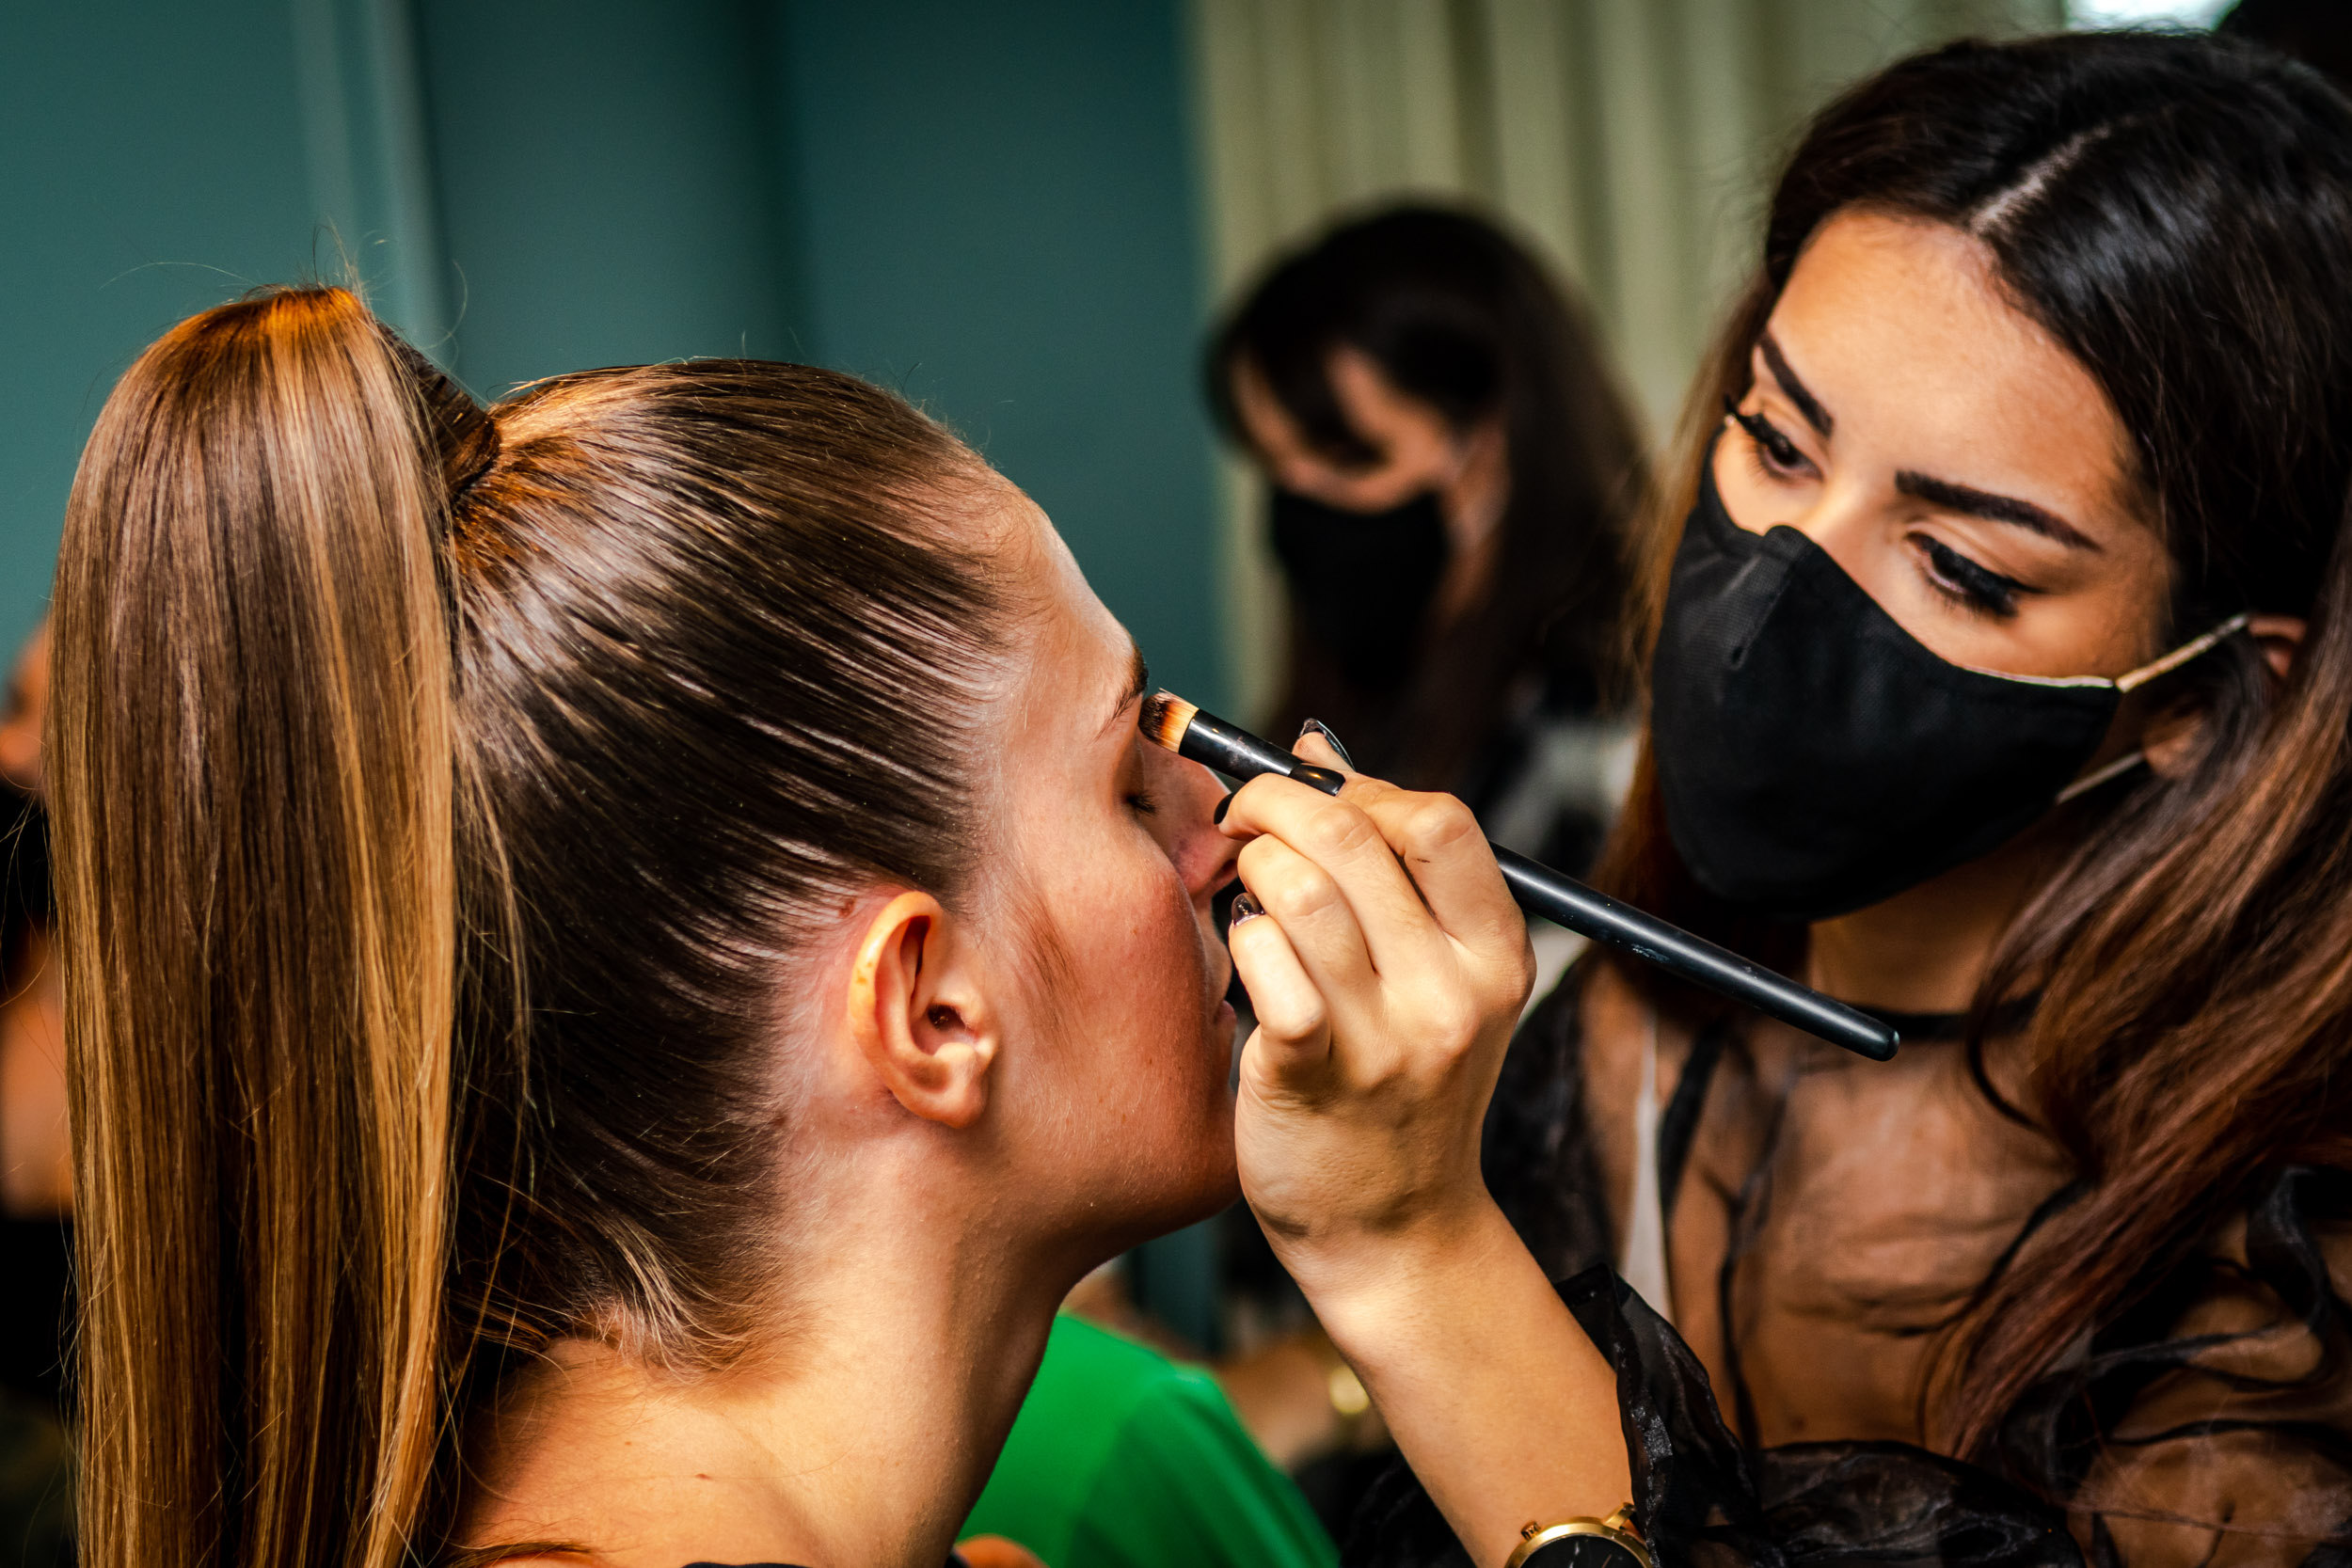 MAKEUP by CALLEGARI: Lifestyle Check In bilateral soirée, SPLIT; Beauty&Hair Expo, ZAGREB